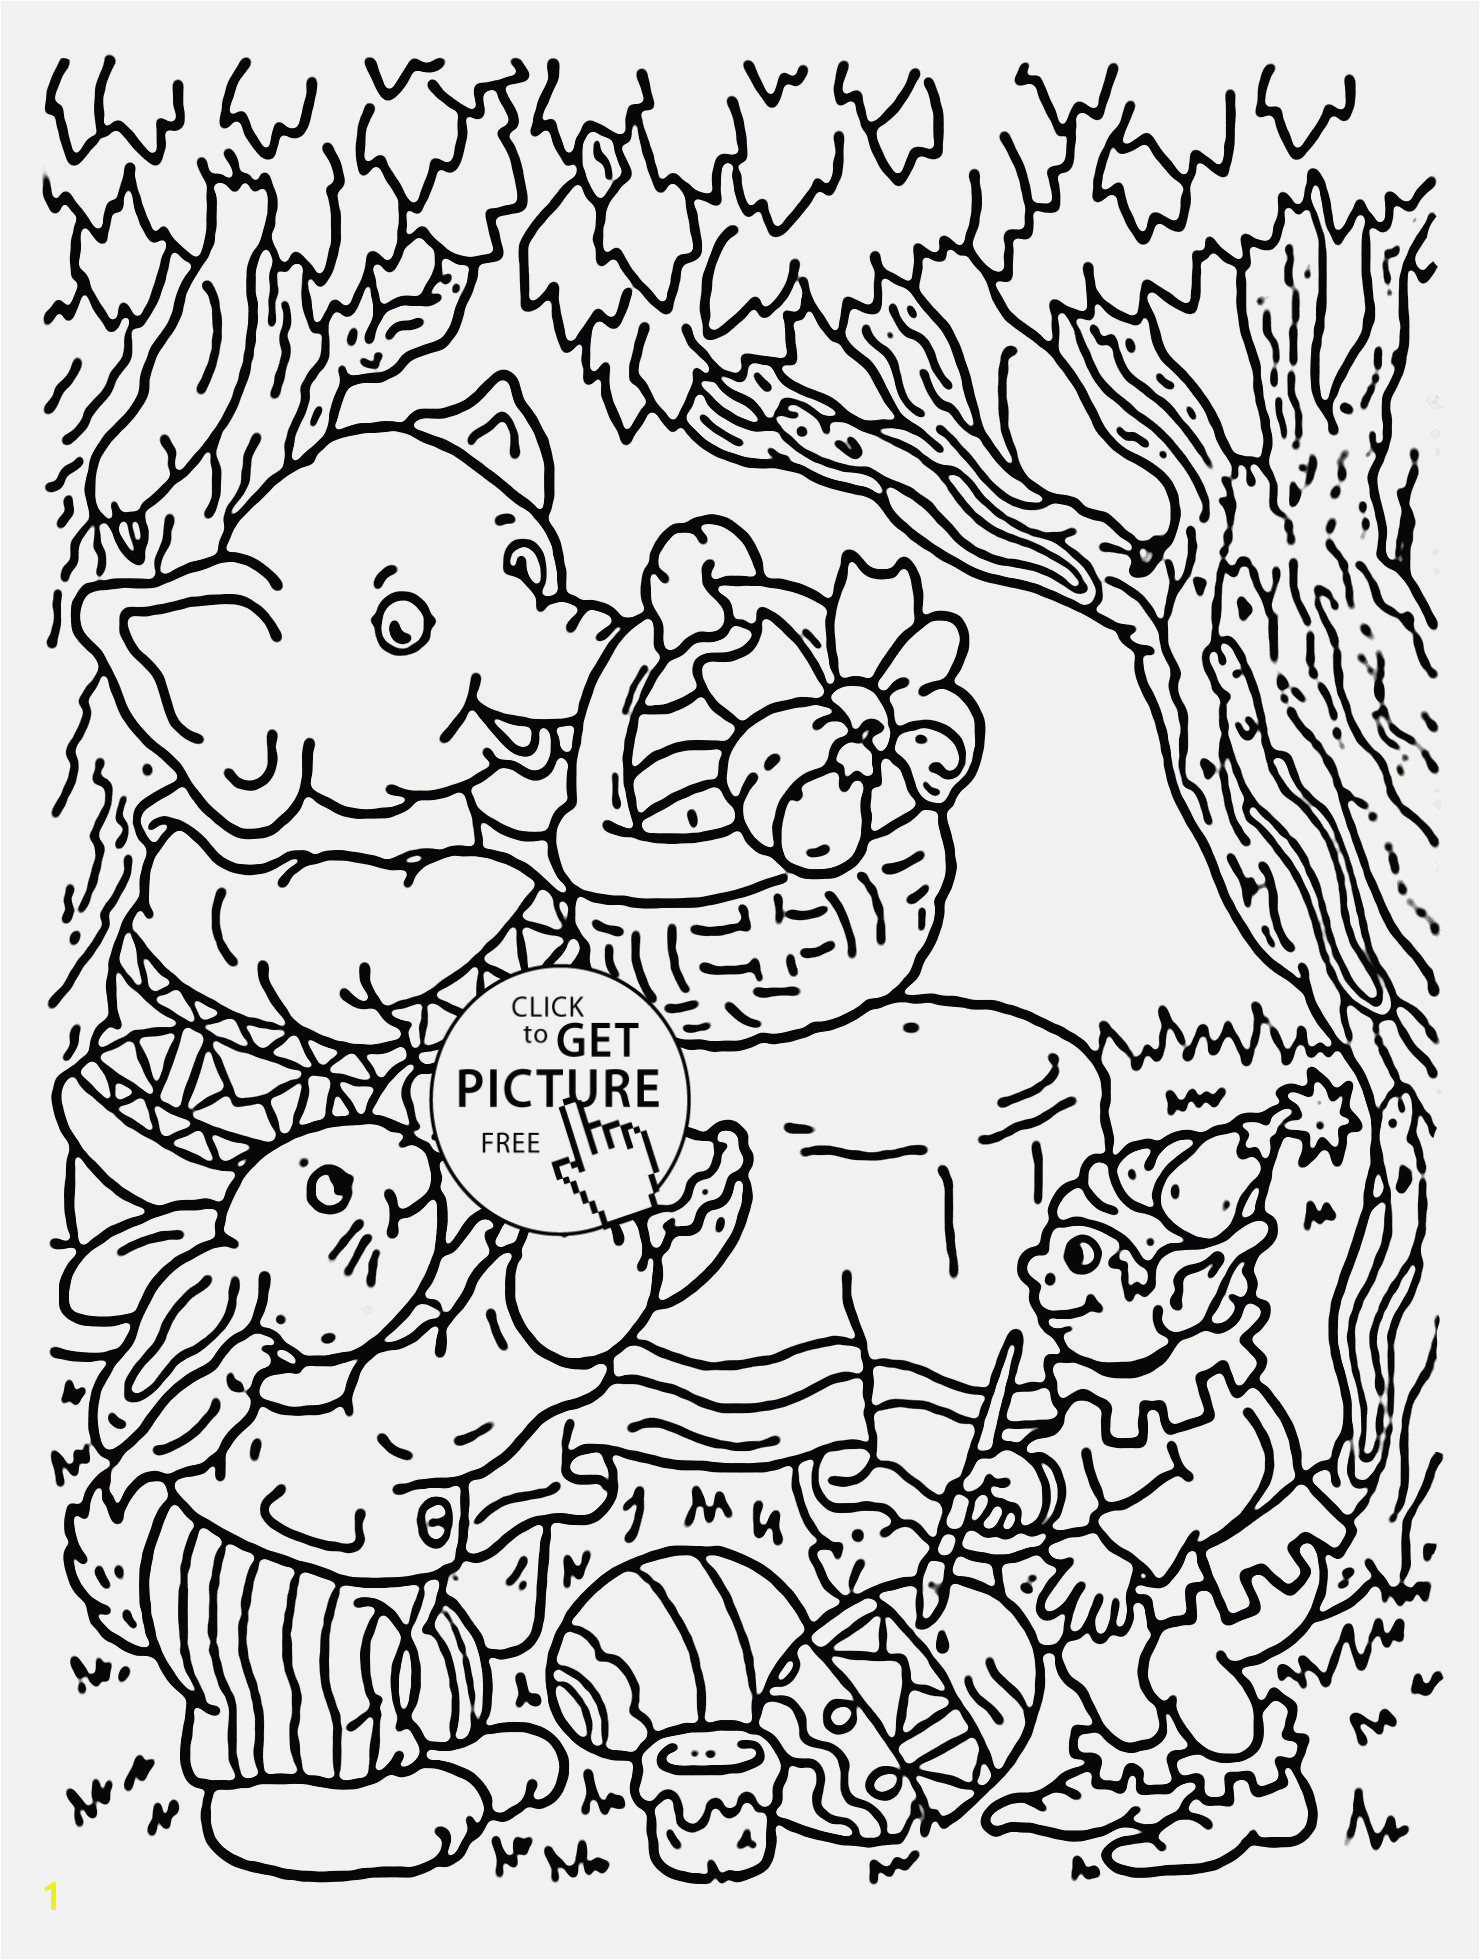 Dragon Ball Z Coloring Pages Printable Coloring Pages Dbz Coloring Pages All Dragon Ball Z Coloring